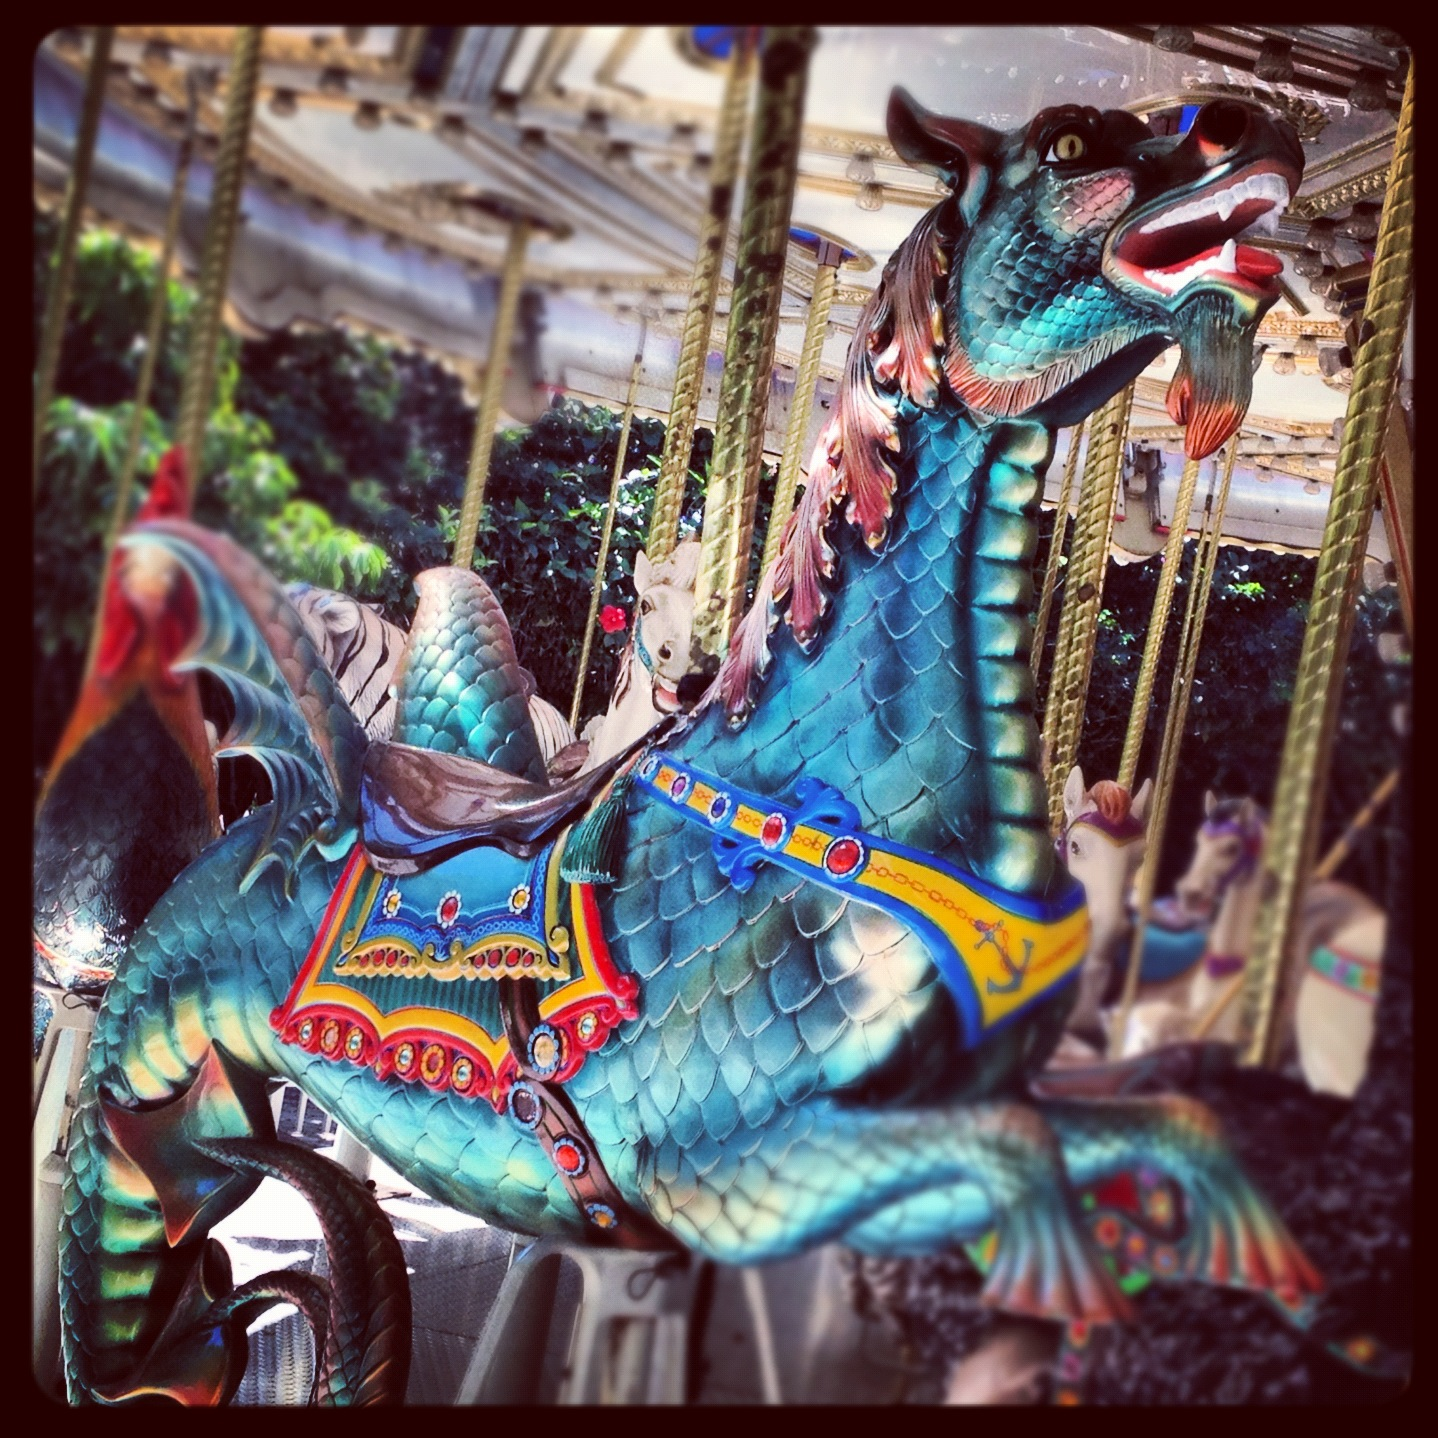 Sea Horse Dragon on the Carousel